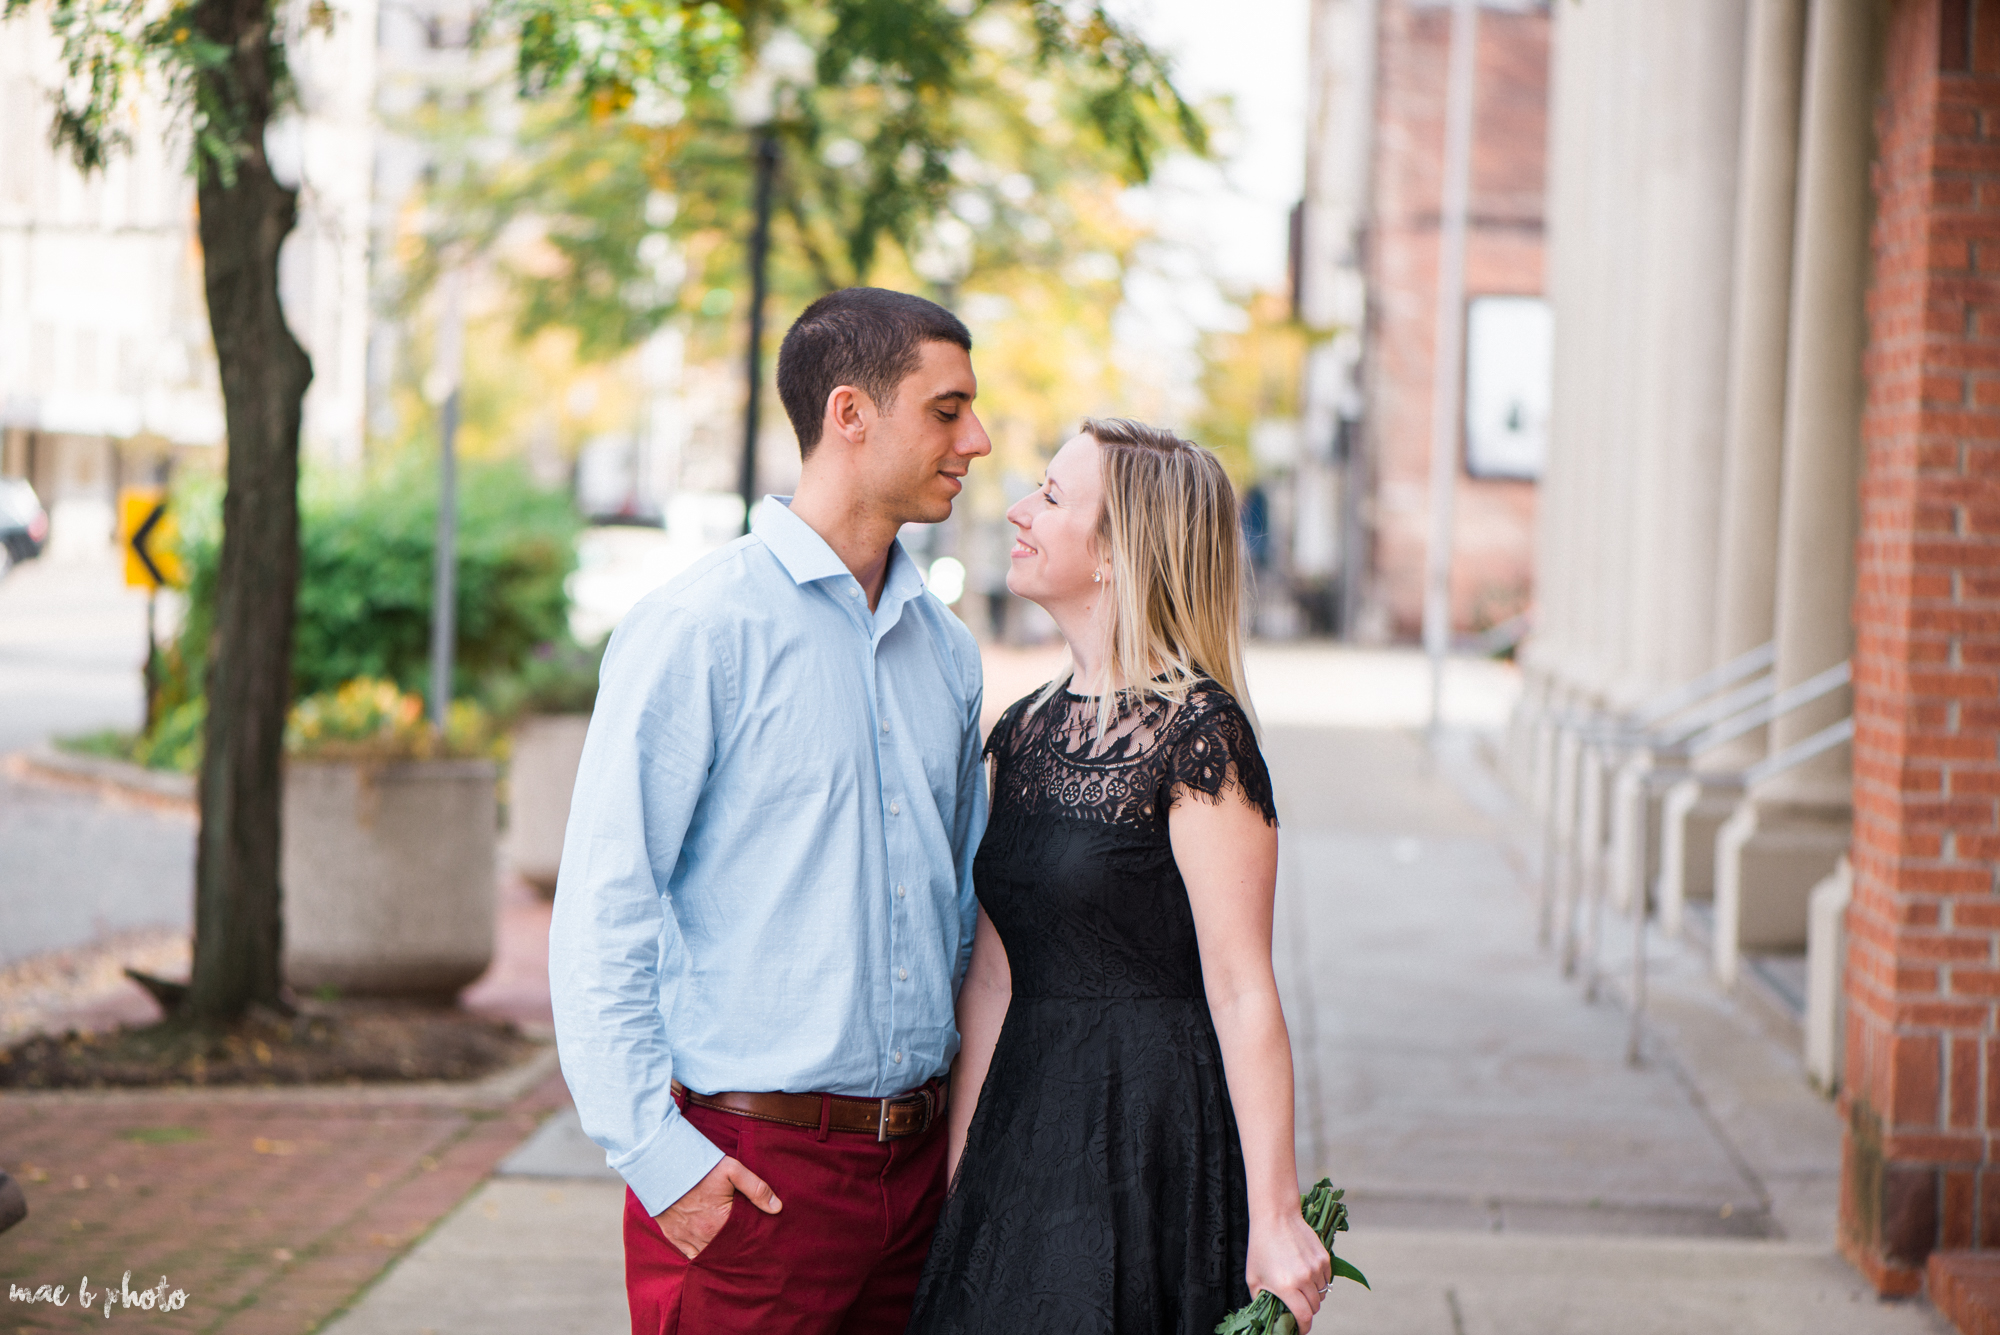 Emily & Michael's Lifestyle Engagement Session in Youngstown Ohio by Mae B Photo-55.jpg